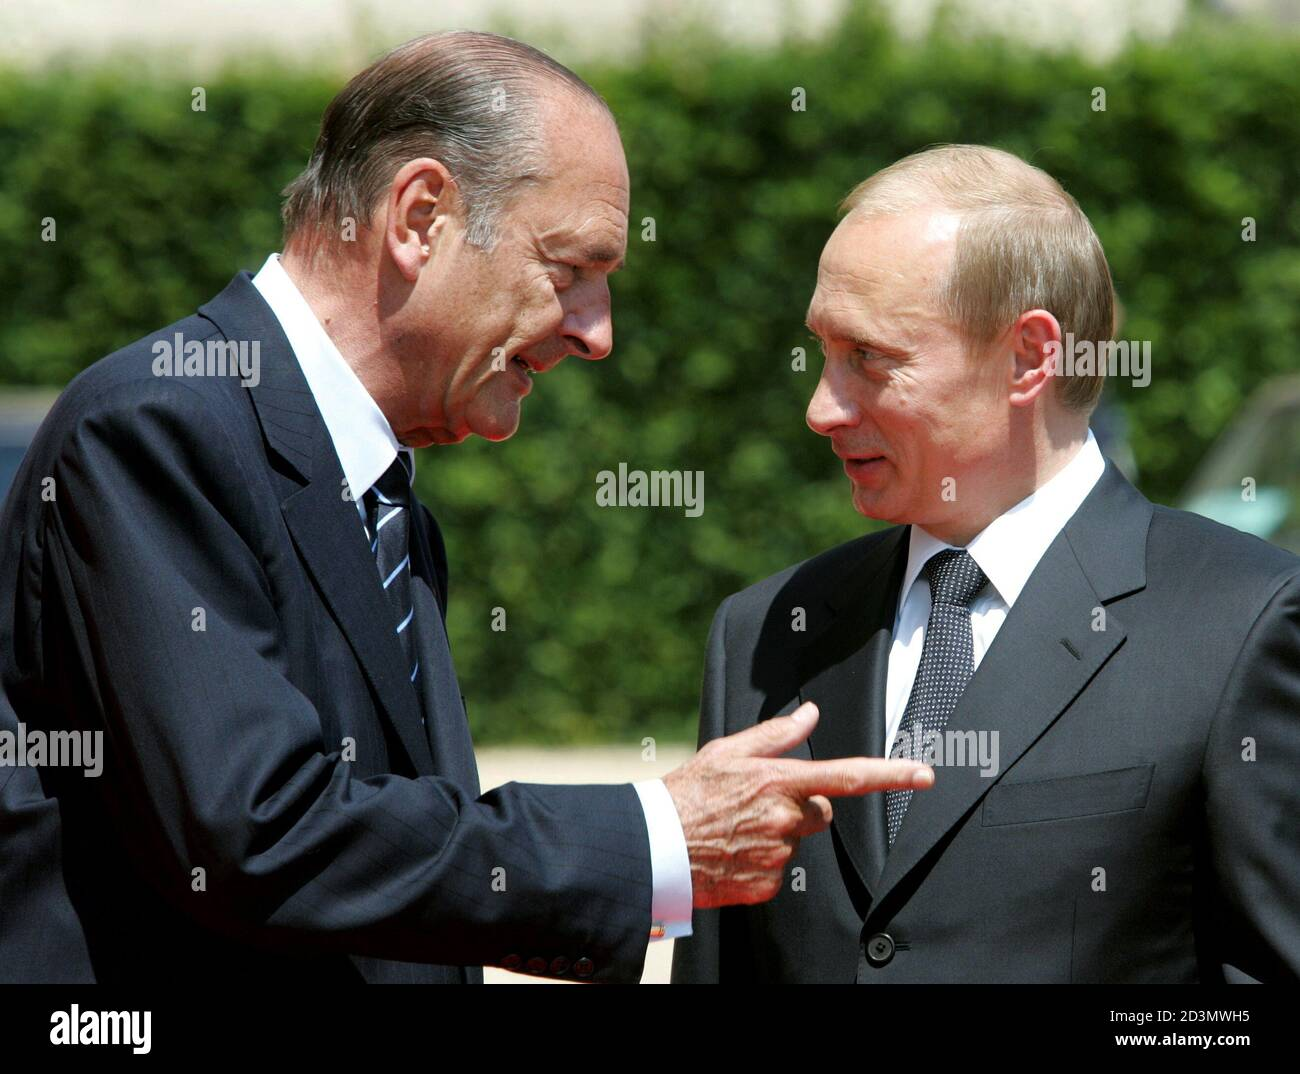 French President Jacques Chirac (L) points to Russian President Vladimir Putin (R) before a lunch at the Hotel de Ville in Caen, June, 6, 2004. [Putin is the first Russian leader to take part in D-Day events in France as veterans and World leaders gather for ceremonies celebrating the 60th anniversary of the Allied landing] in Normandy. Stock Photo